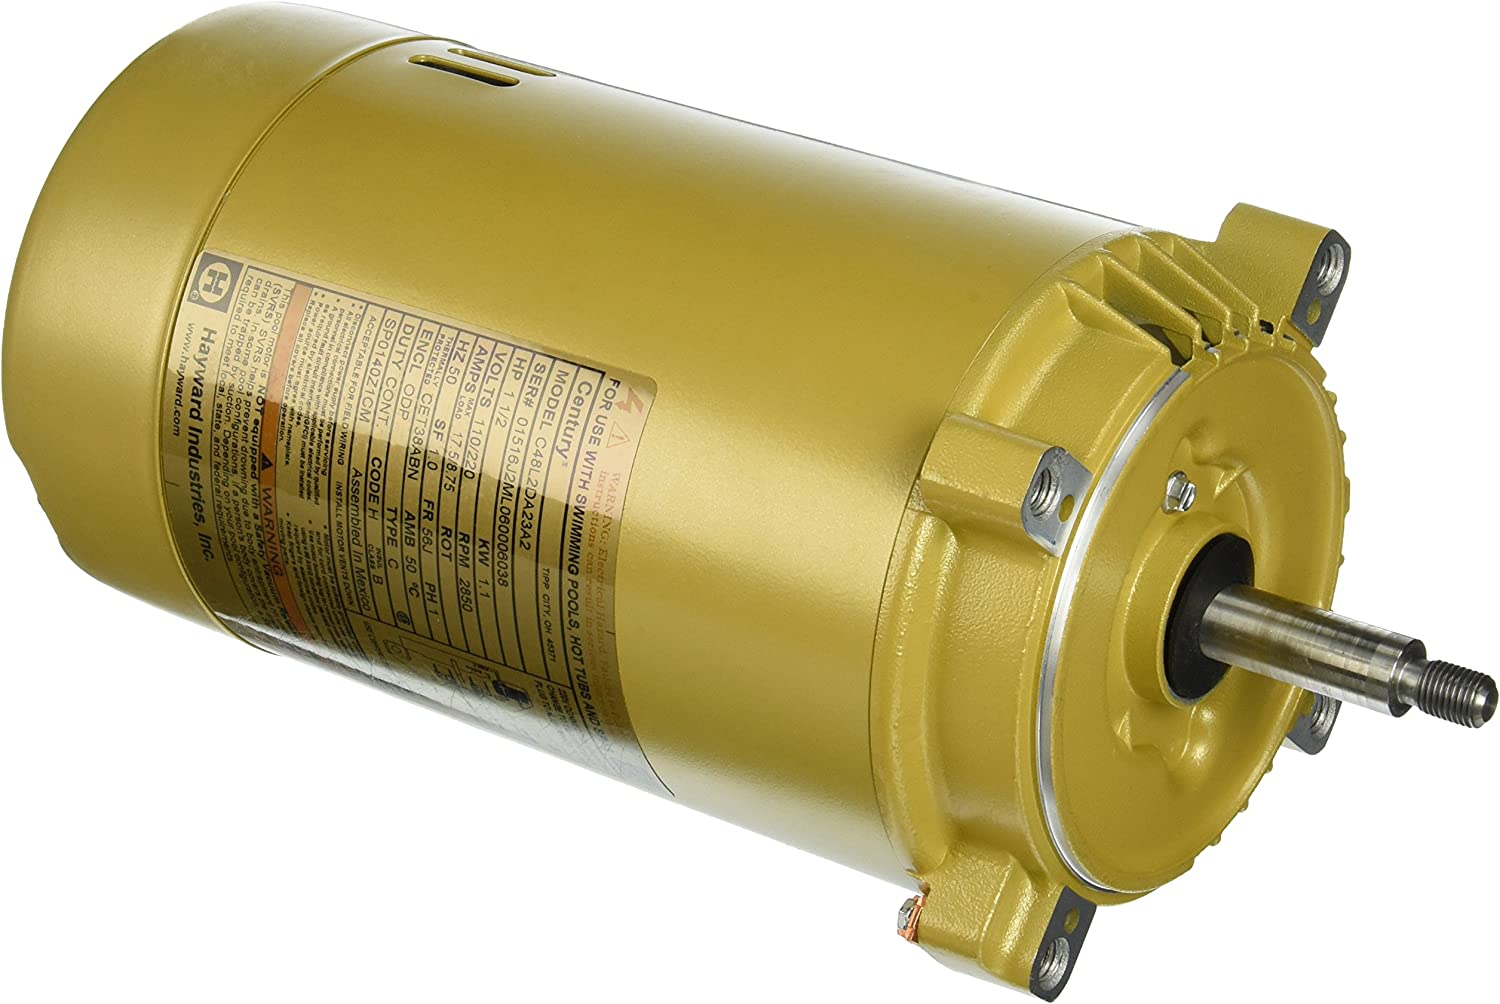 Hayward SPX0140Z1CM 50 Cycle Motor Replacement for Hayward Super II Series Pump, 1-1/2-HP